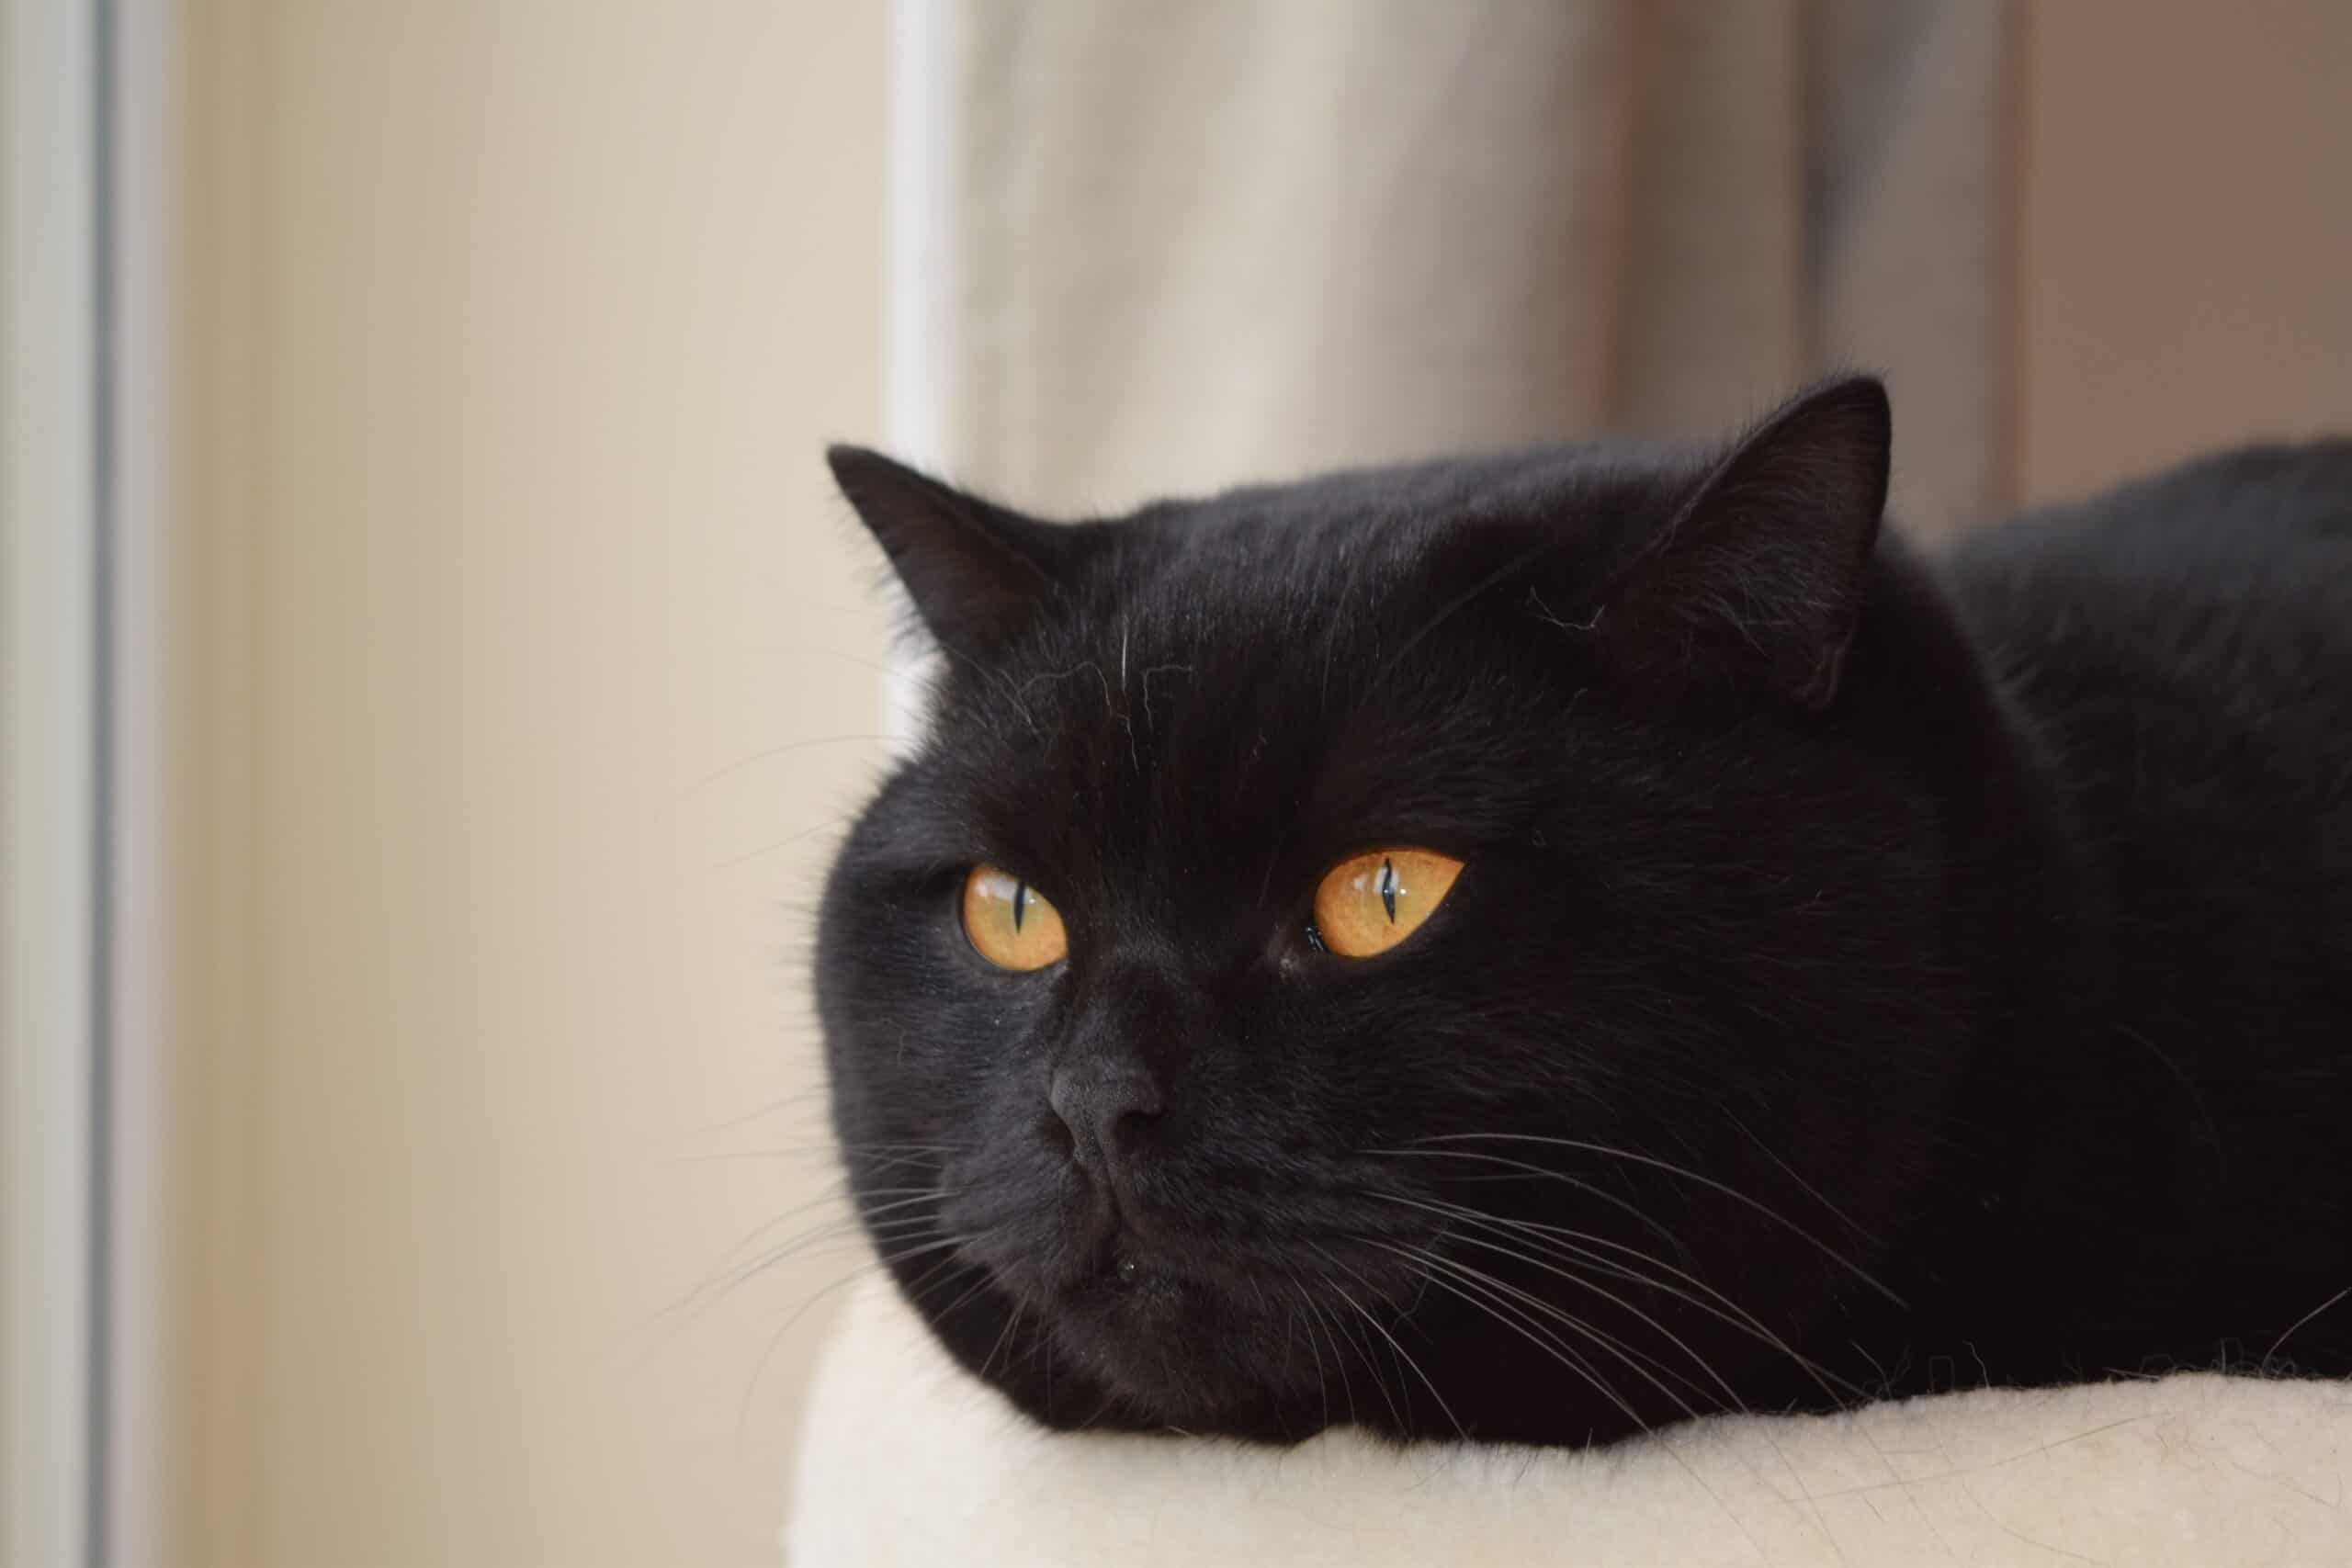 why do cats have a third eyelid?